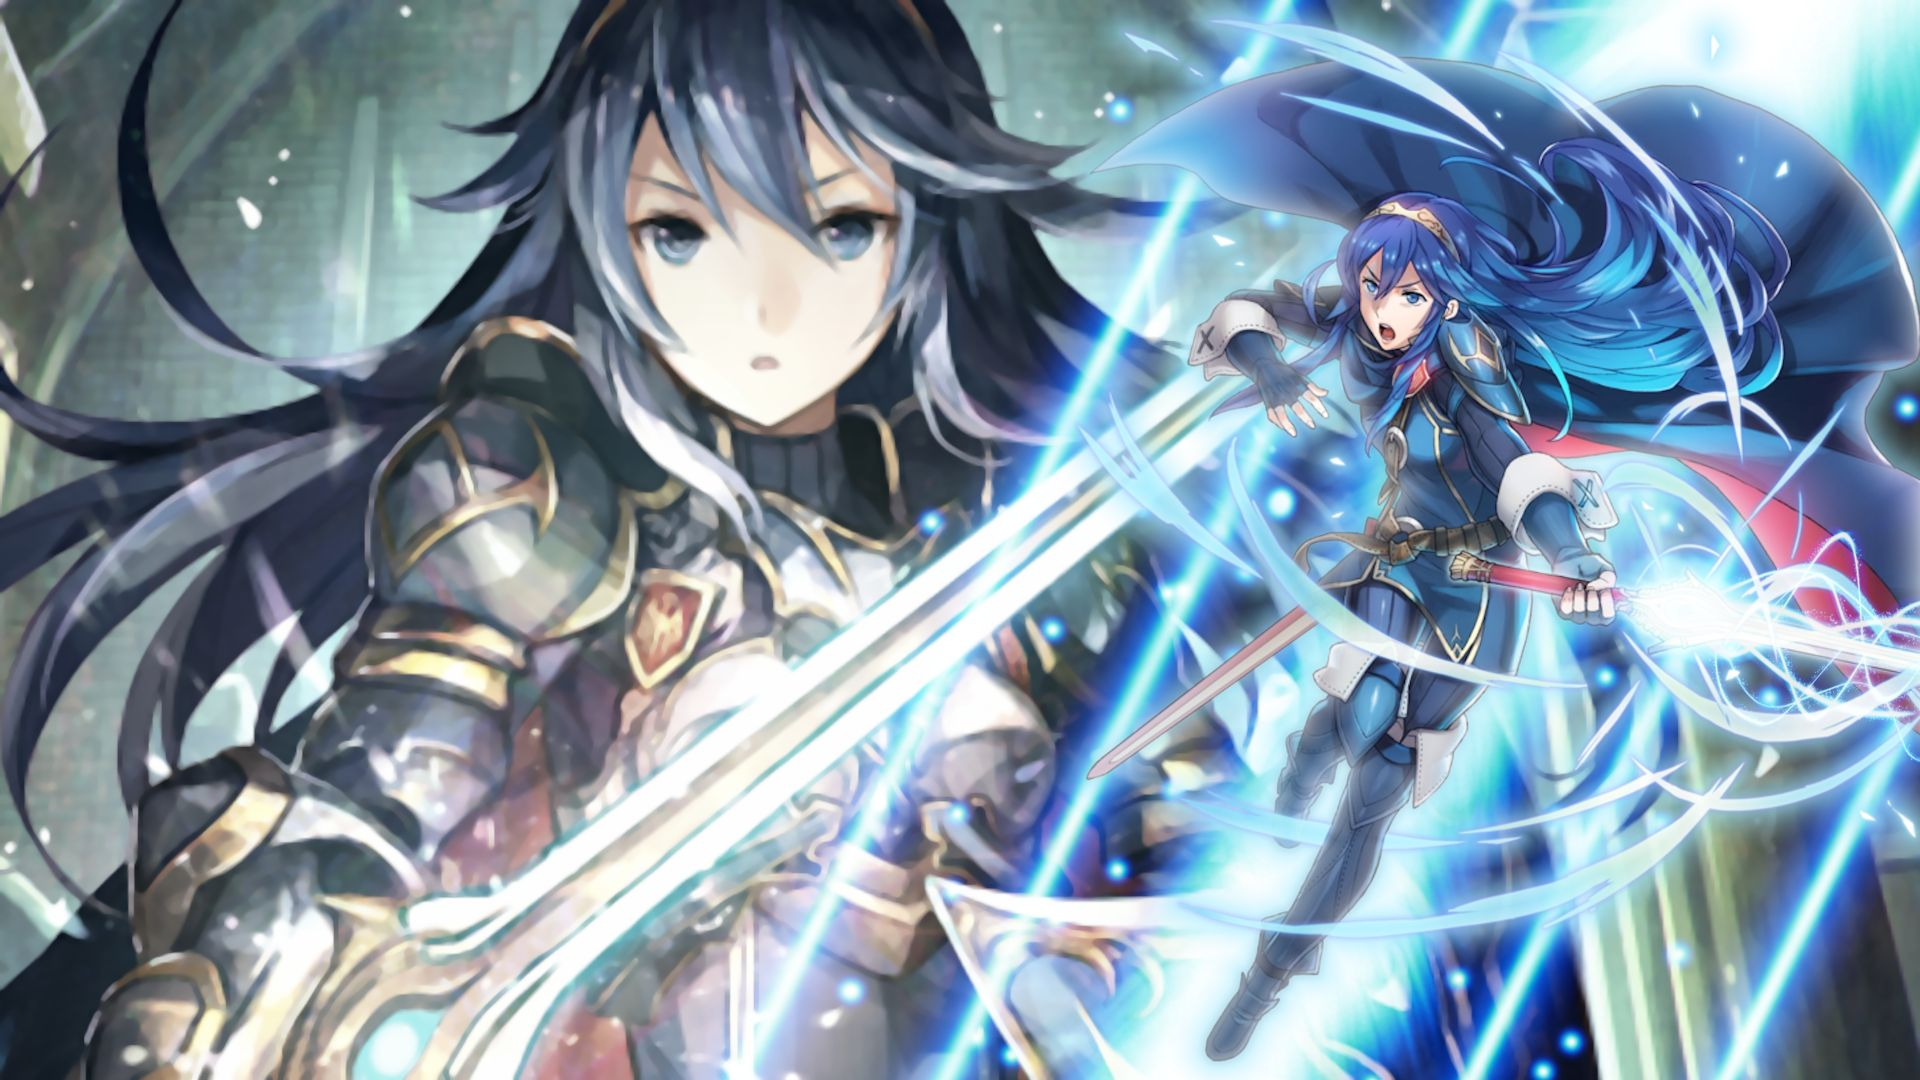 Fire Emblem Heroes Wallpaper - Lucina by IncognitoZA on ...